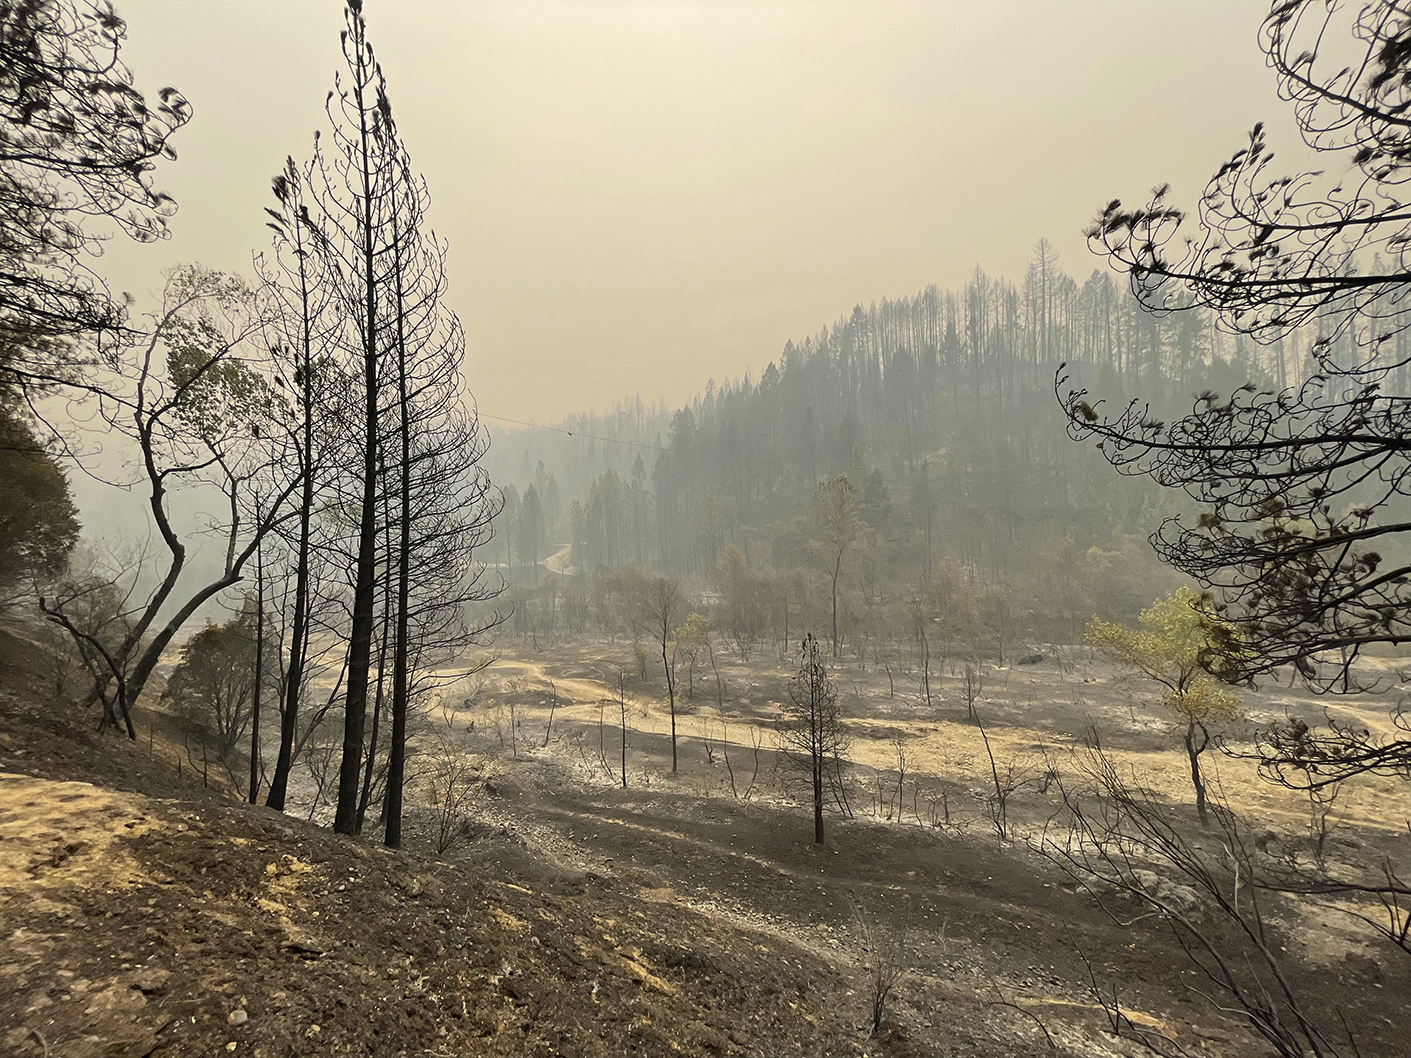 Burned trees and smoke fill the Bear River canyon after the River Fire burned through Friday, Aug. 6, 2021 in Chicago Park, Calif. (Elias Funez/The Union via AP)